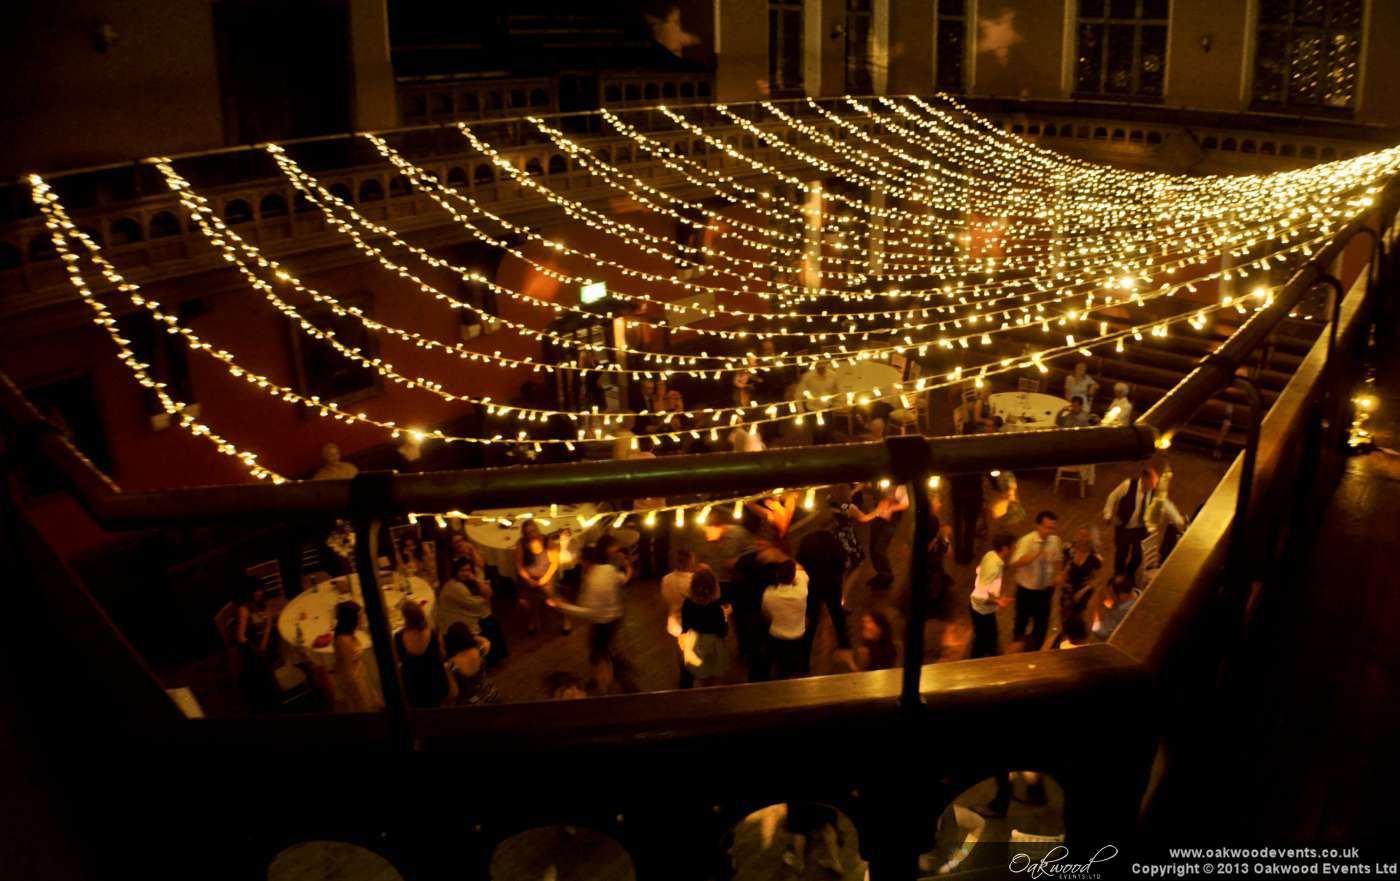 Fairy Light Canopy For An Outdoor Summer Evening Event